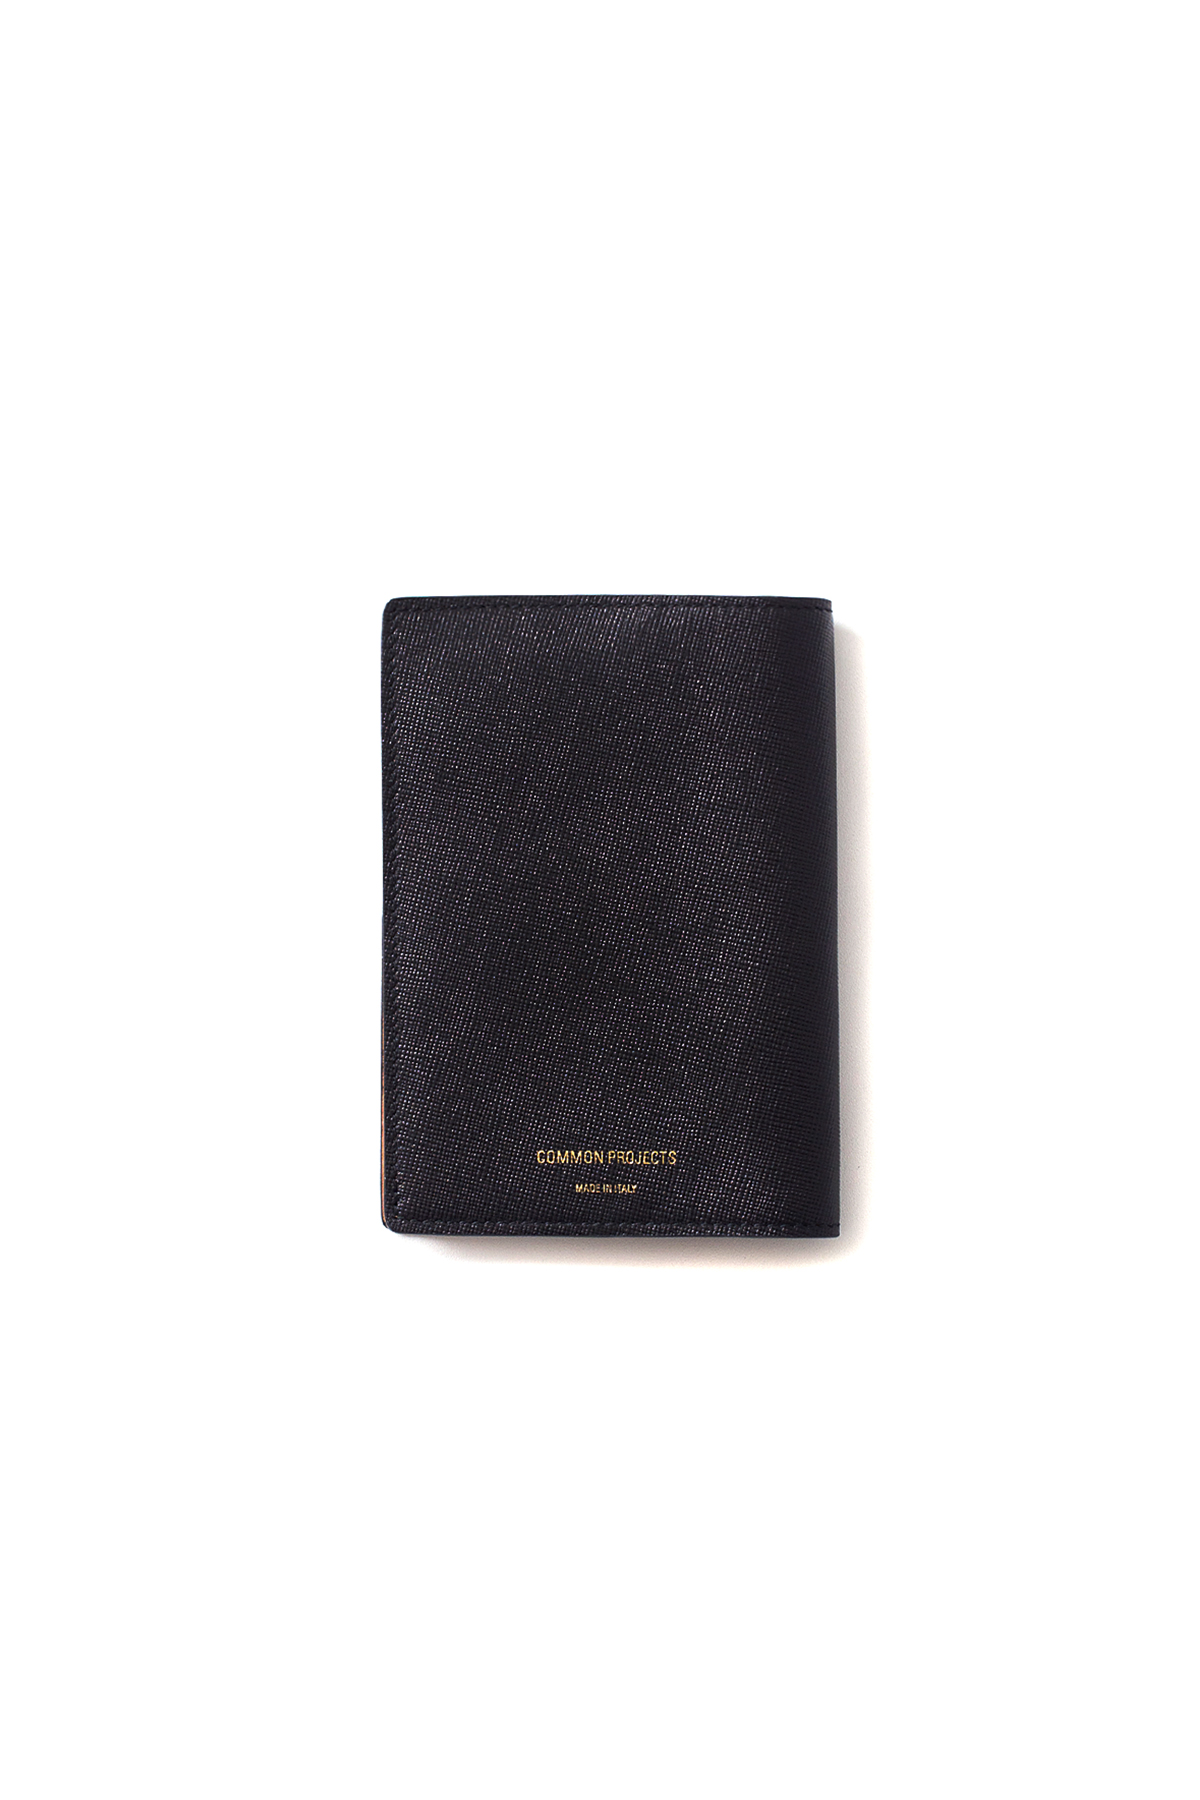 Common Projects : Passport Folio 9039 (Black)